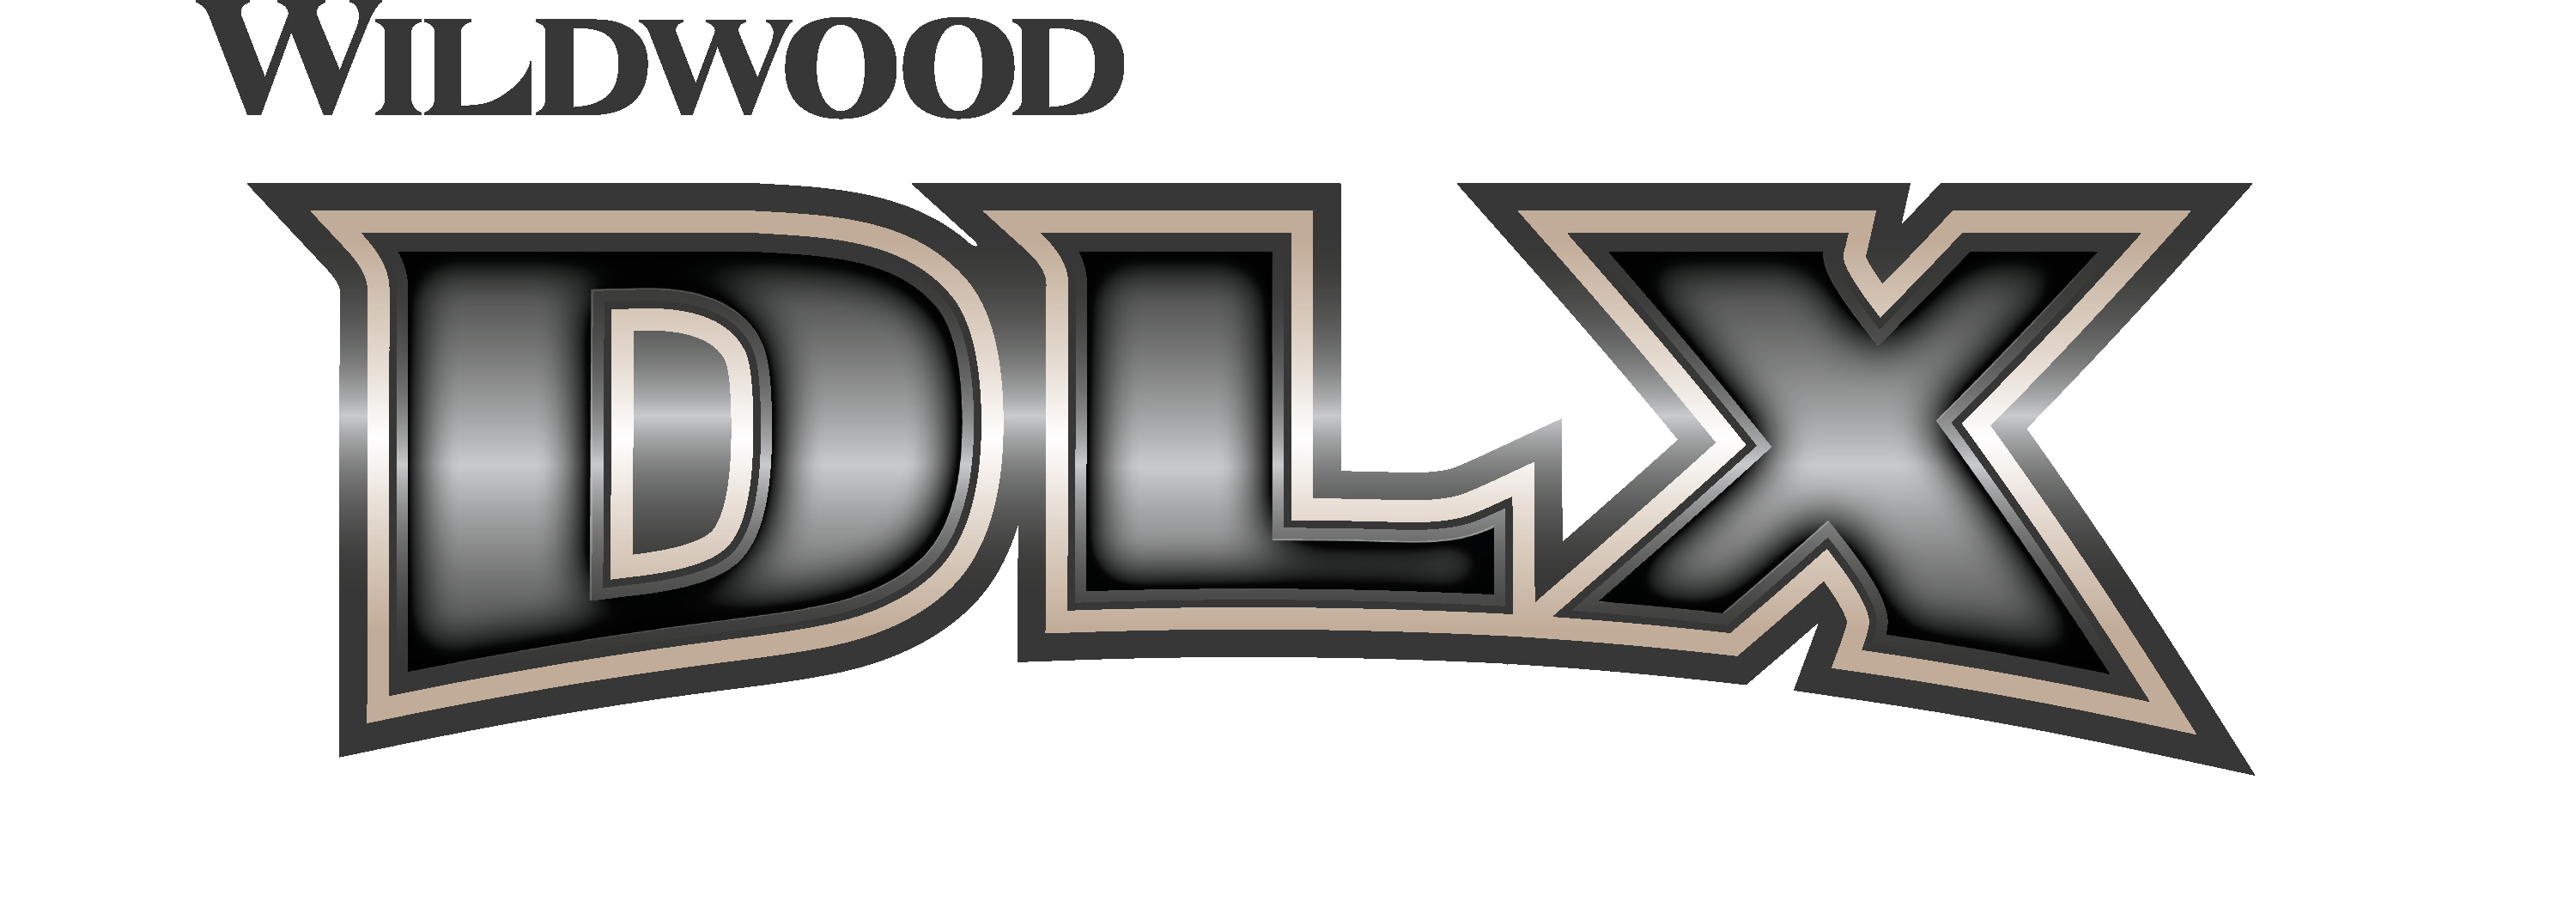 Wildwood DLX Destination Trailer Logo